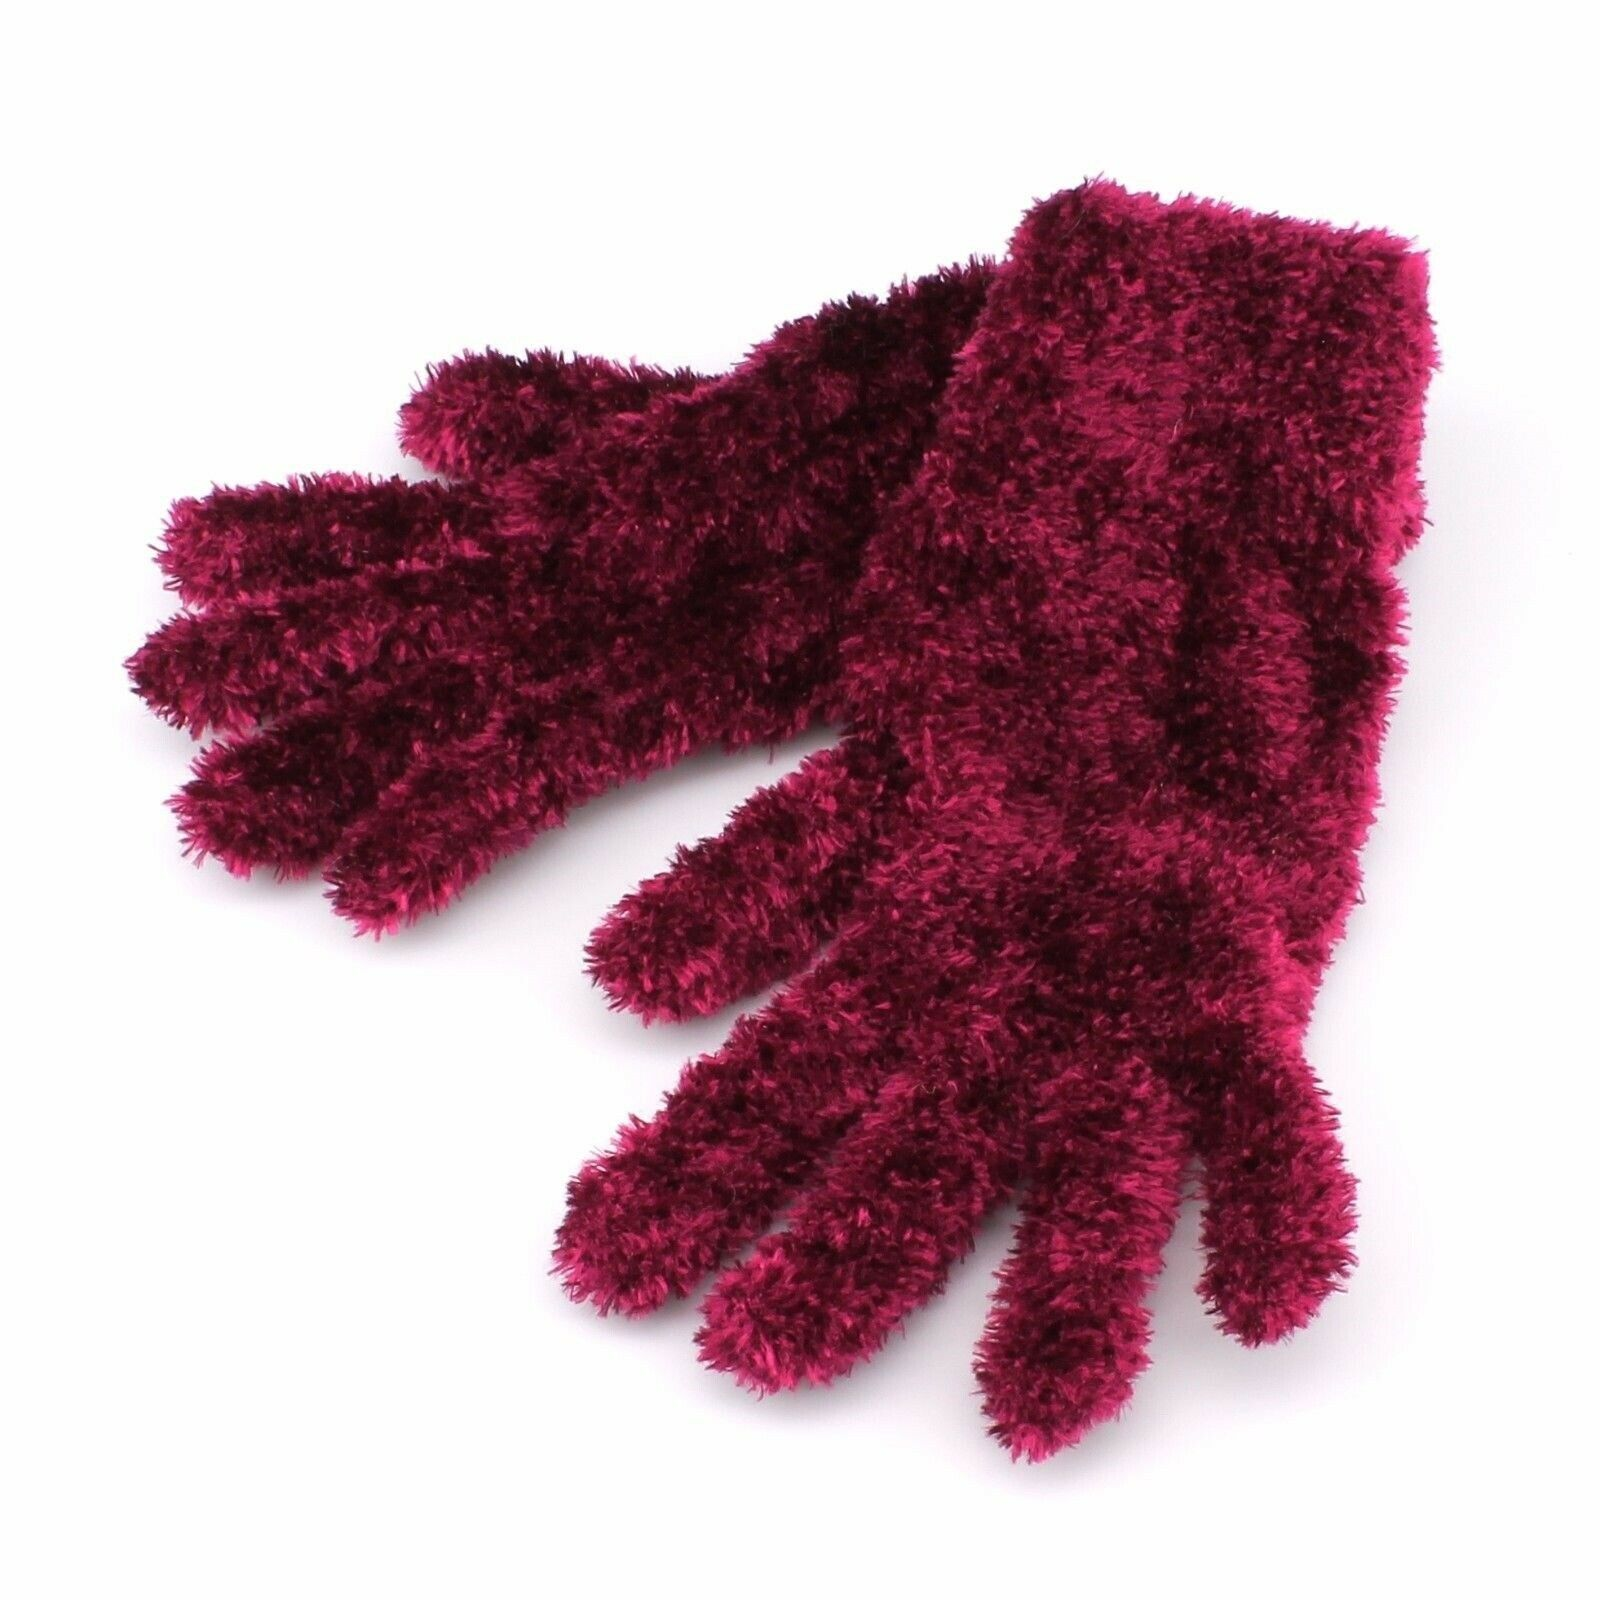 Feather Chenille Gloves For Women - Croft & Barrow - One Size